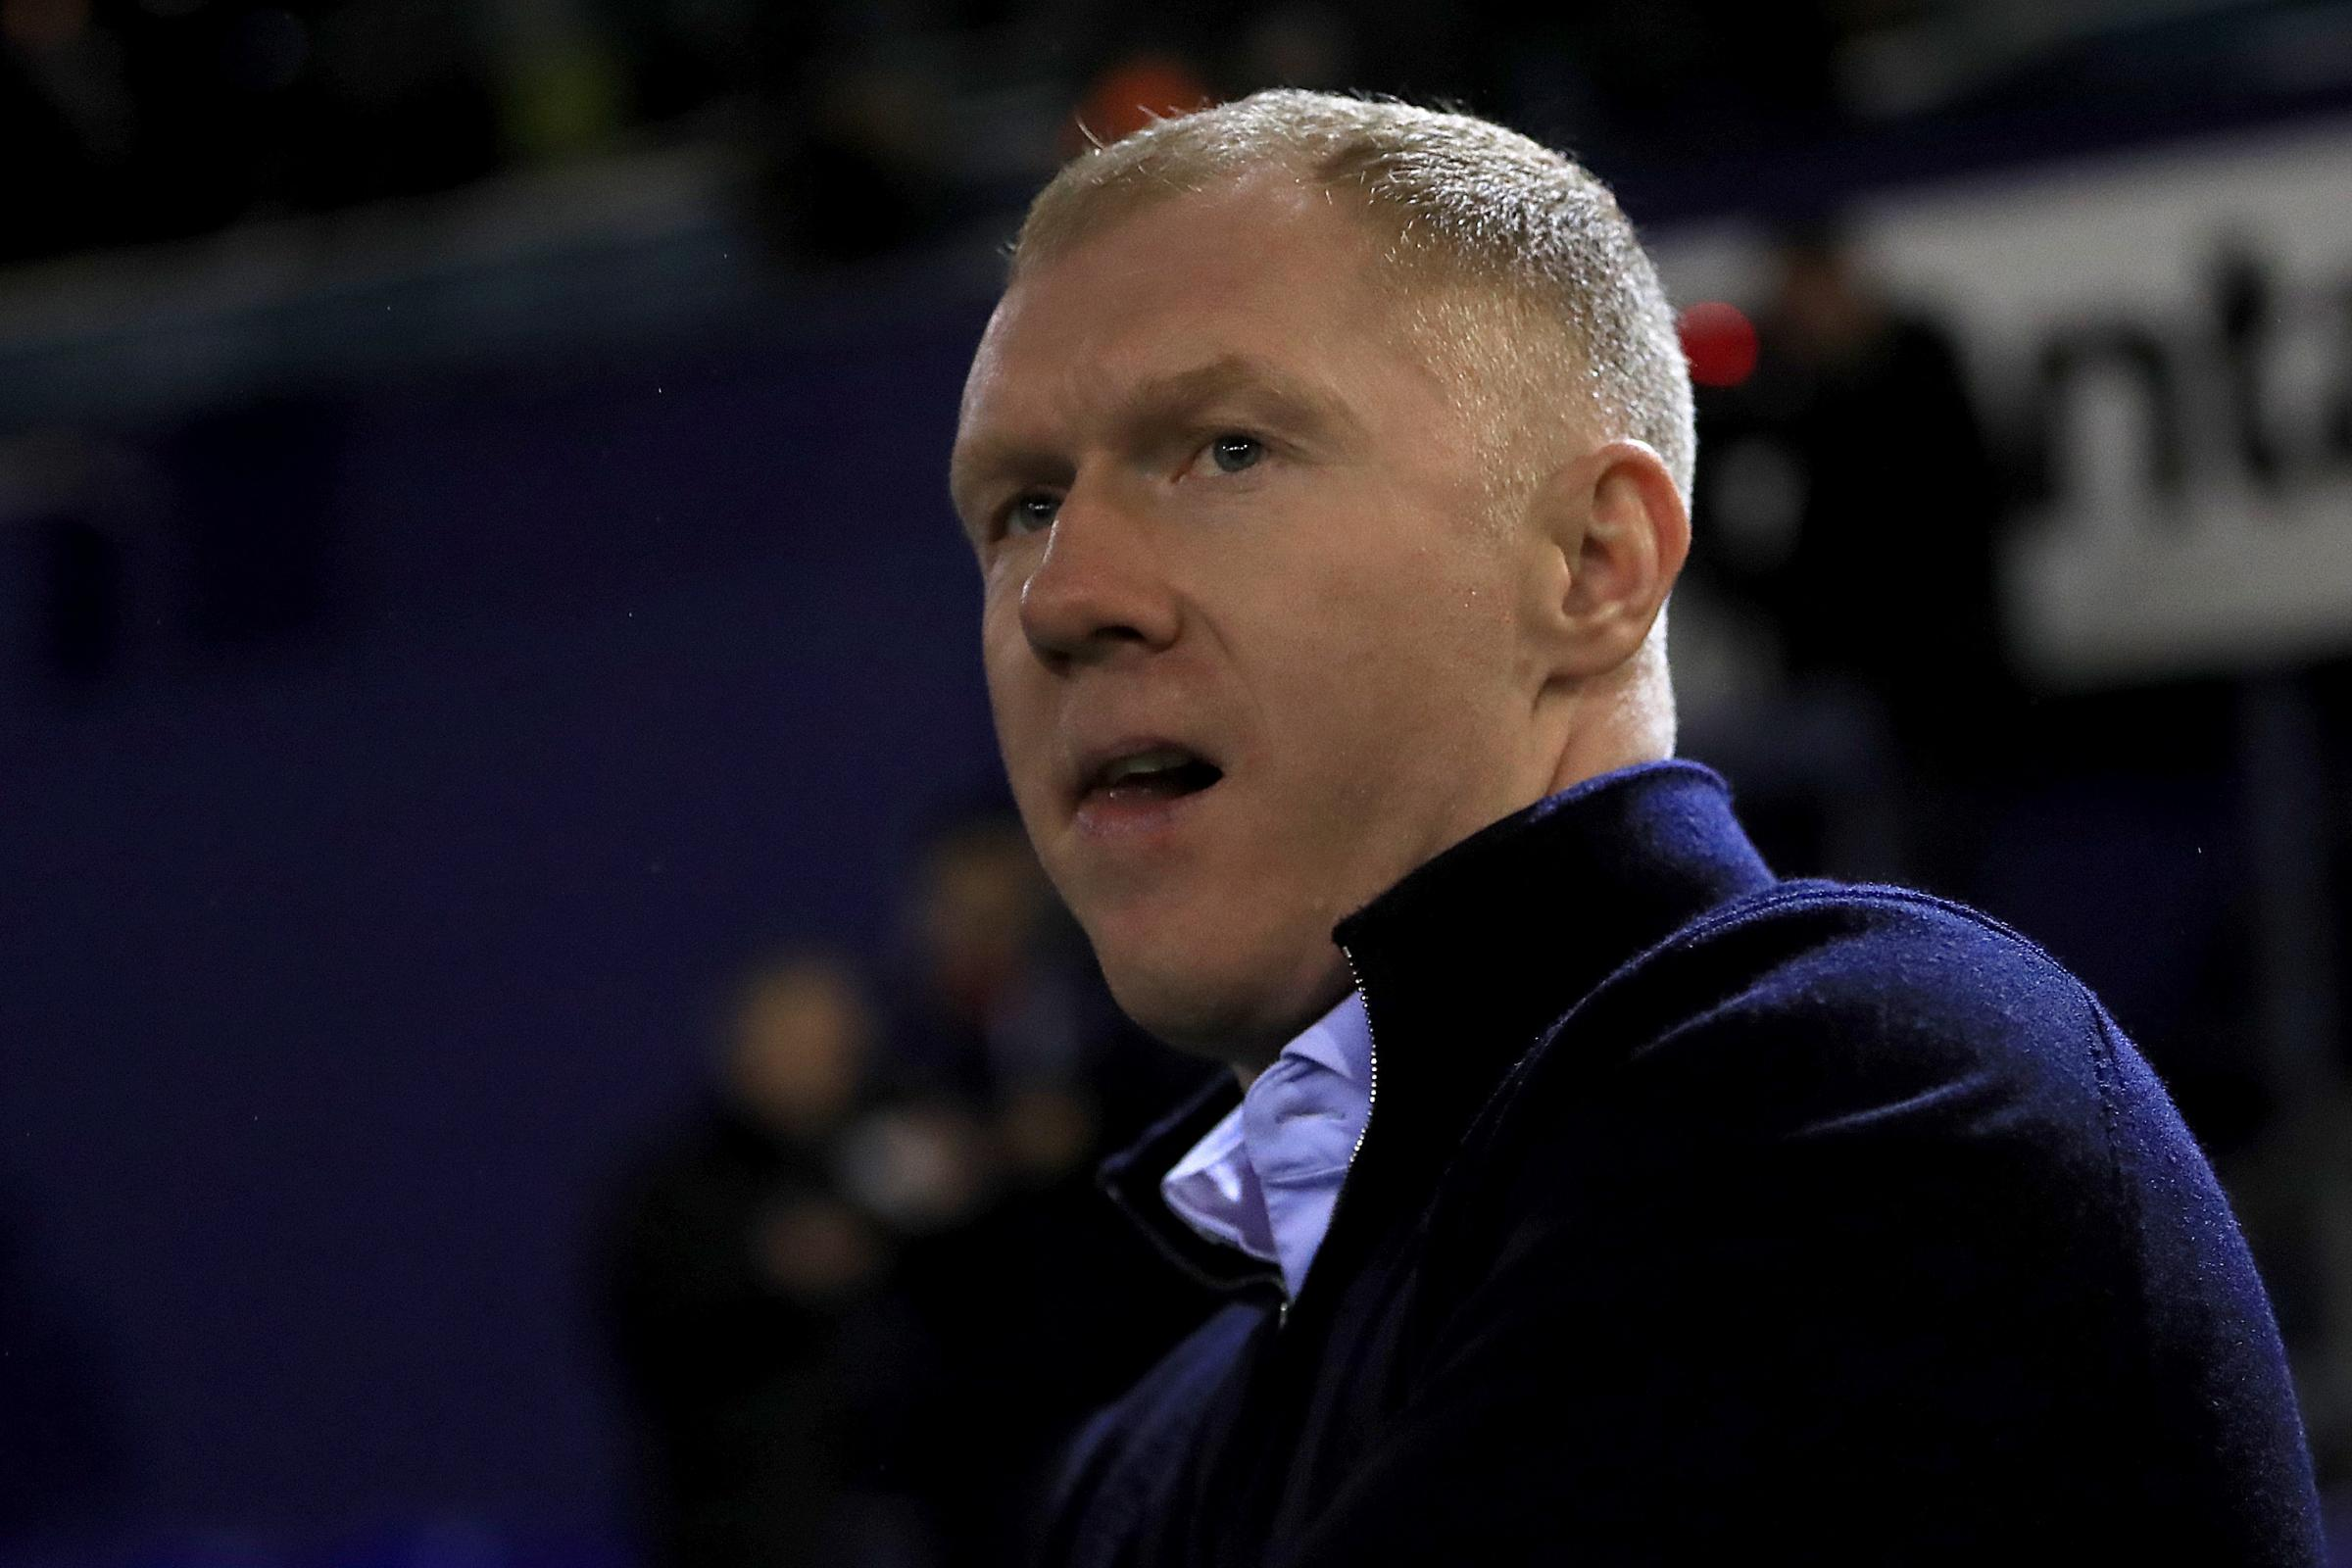 Paul Scholes left Oldham after just 31 days